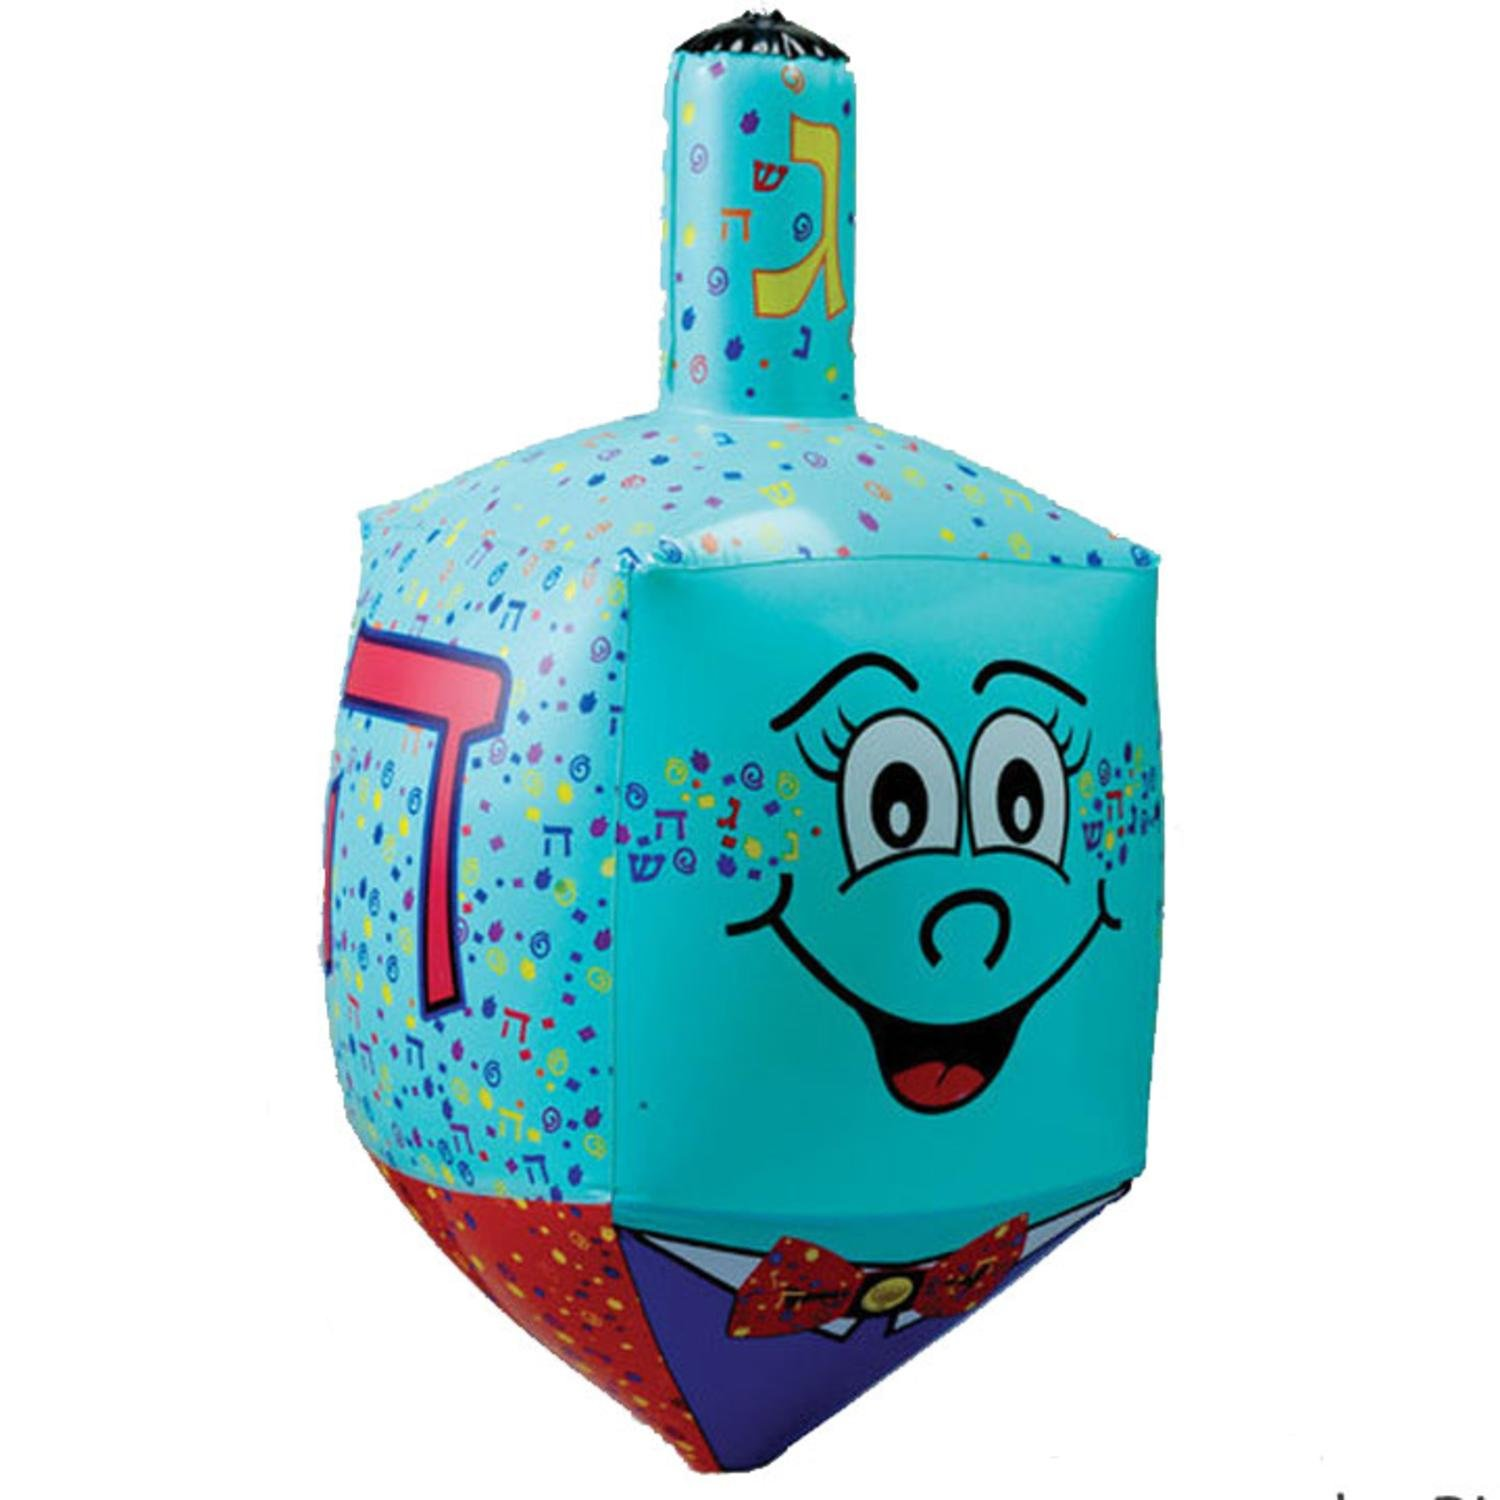 Amazon 235 Large Blue Inflatable Hanukkah Dreidel Decoration With Smiley Face Toys Games